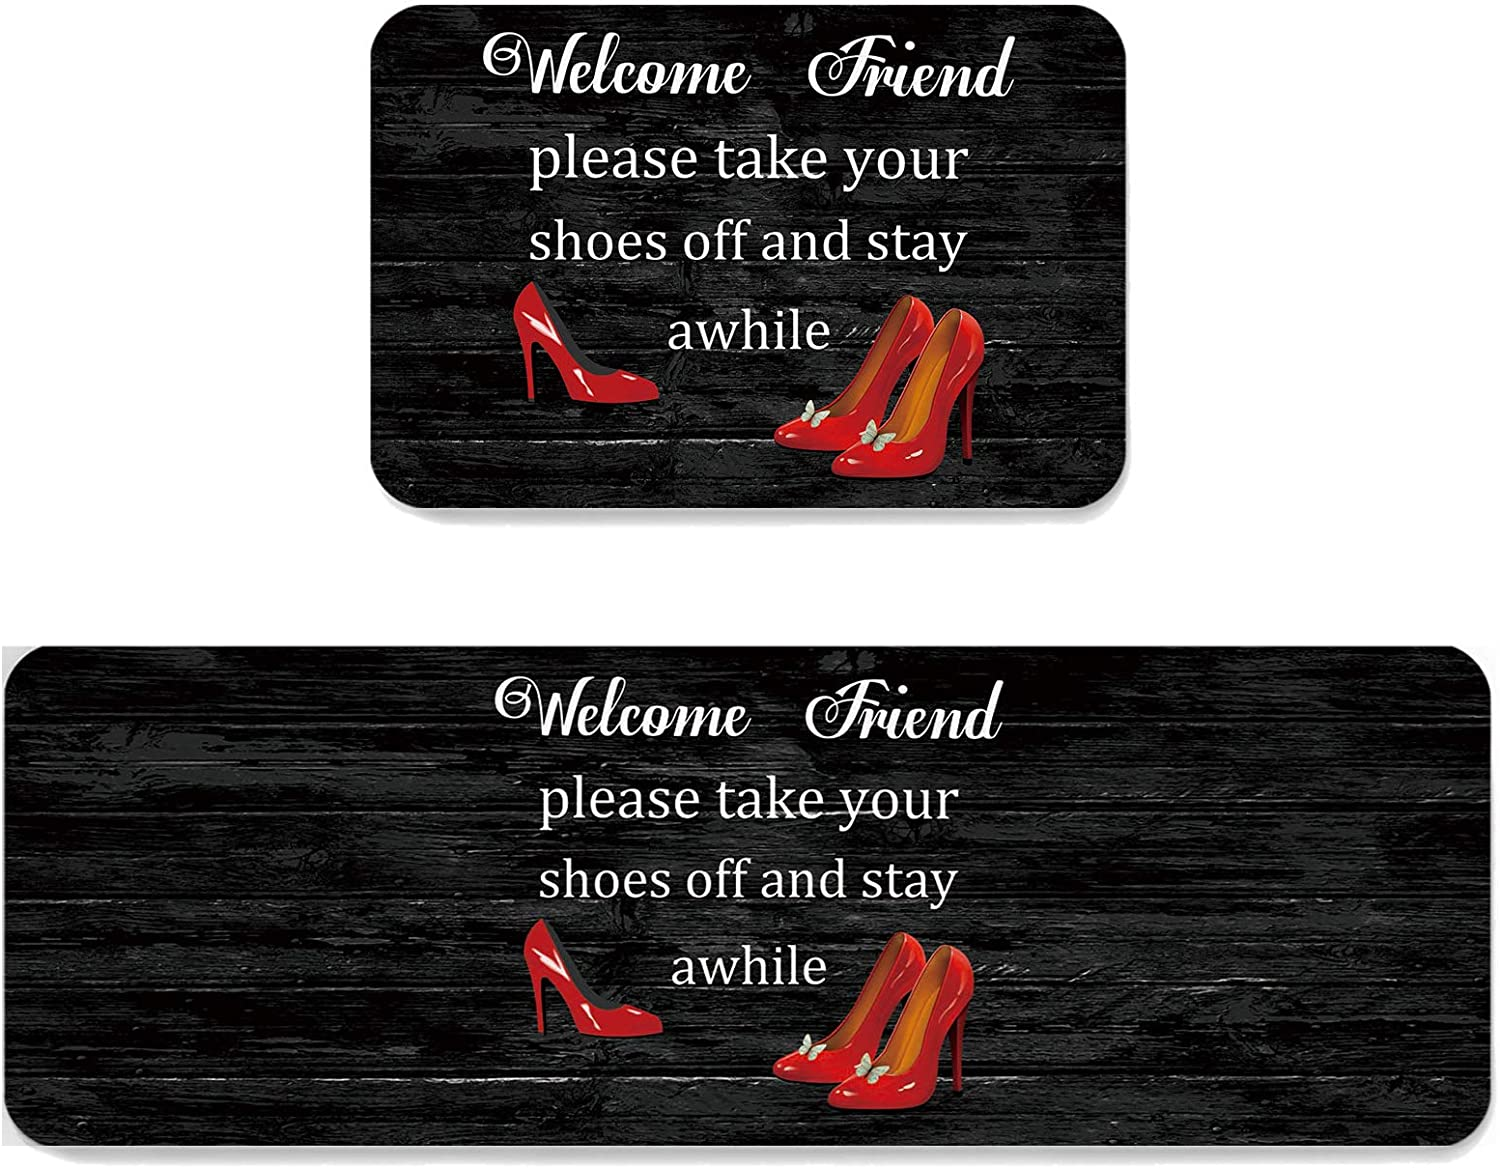 Funny Words Welcome Friend Please Take Red Hig Your He Outlet Oakland Mall sale feature off Shoes